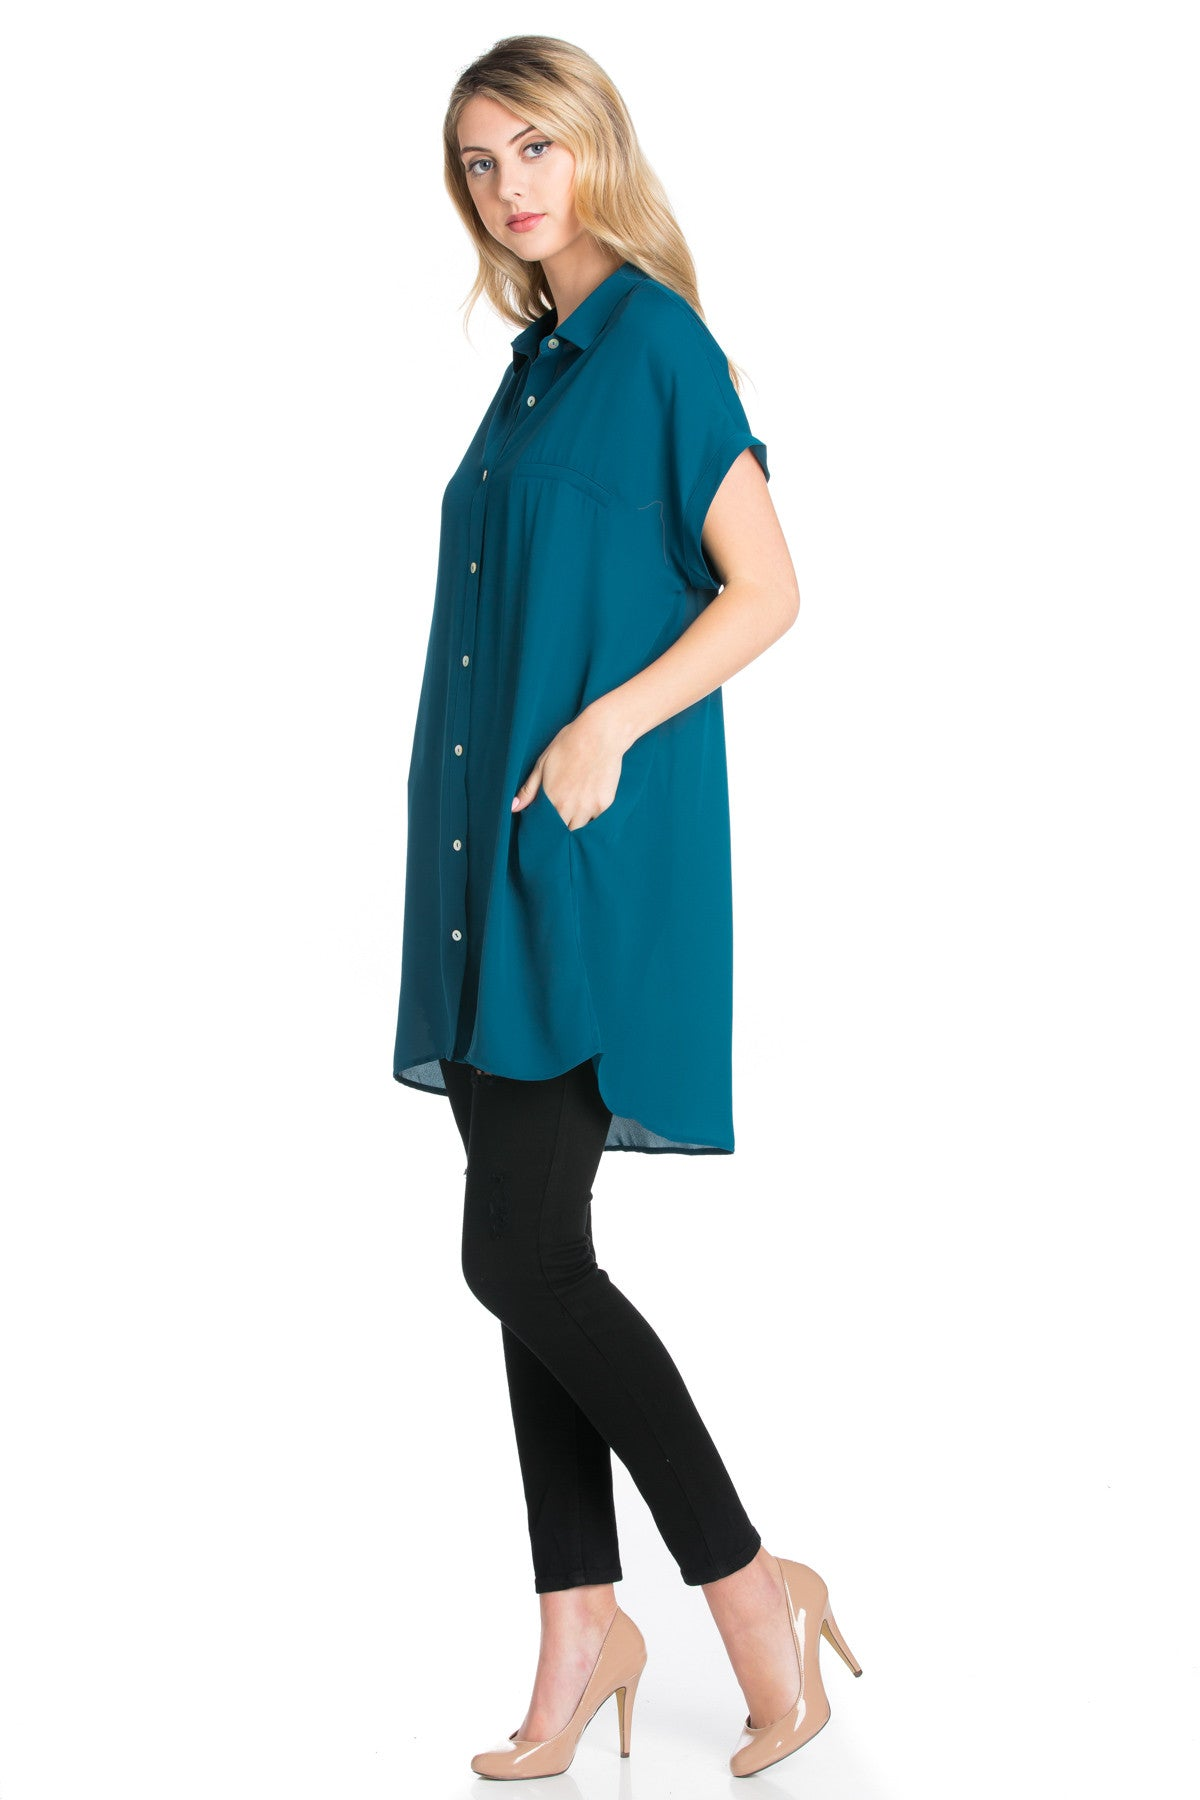 Short Sleeve Longline Button Down Chiffon Top in Teal - Tops - My Yuccie - 2